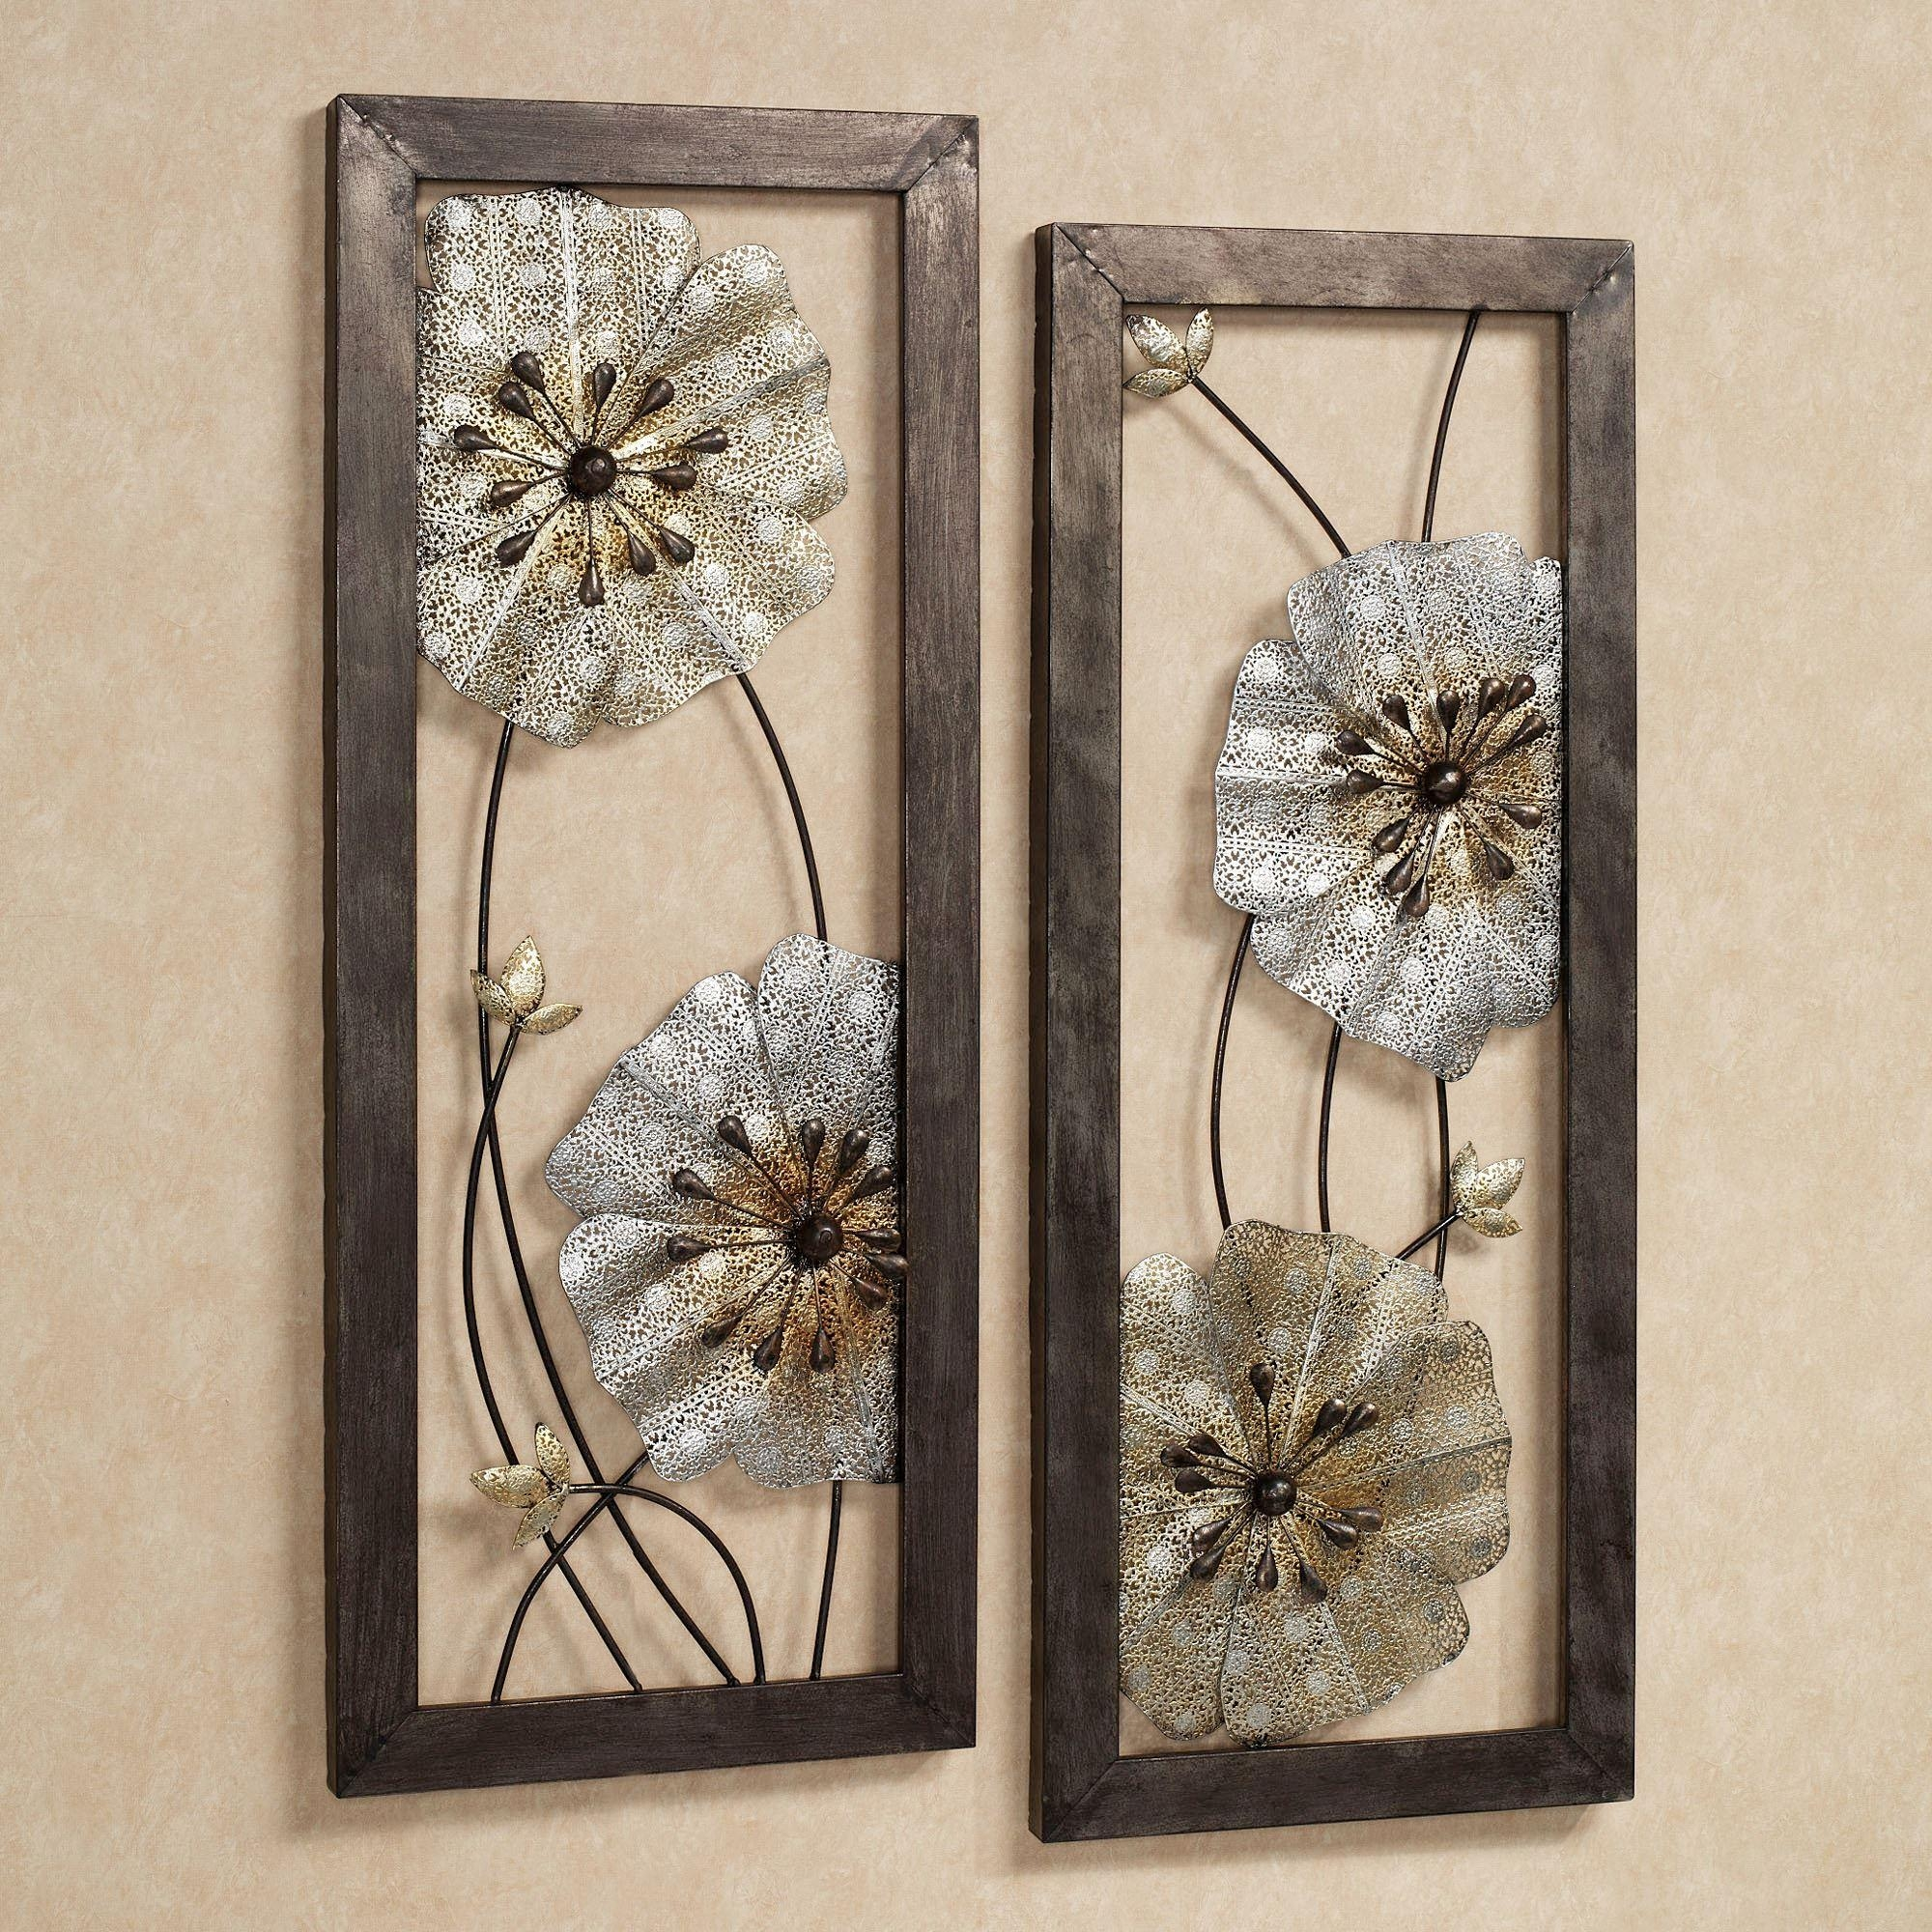 Wall Art, Metal Wall Art, Wooden Wall Art | Touch Of Class Inside Wood And Iron Wall Art (Image 16 of 20)